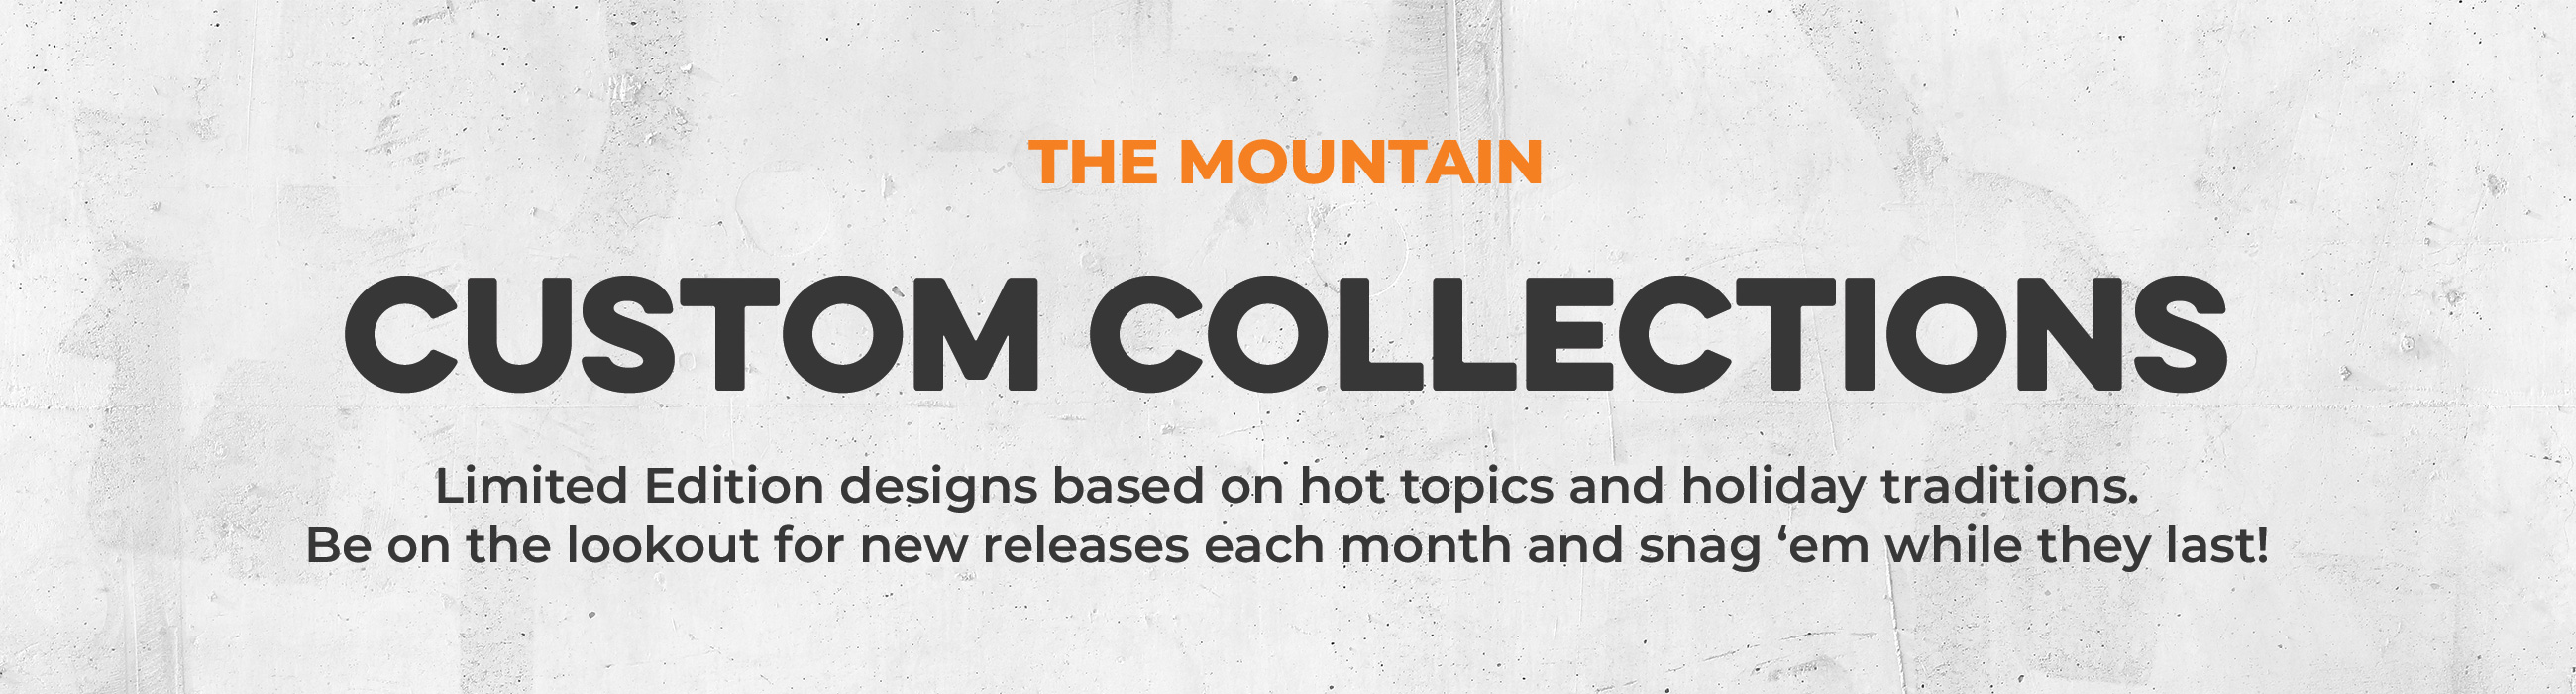 Limited Edition Items from The Mountain